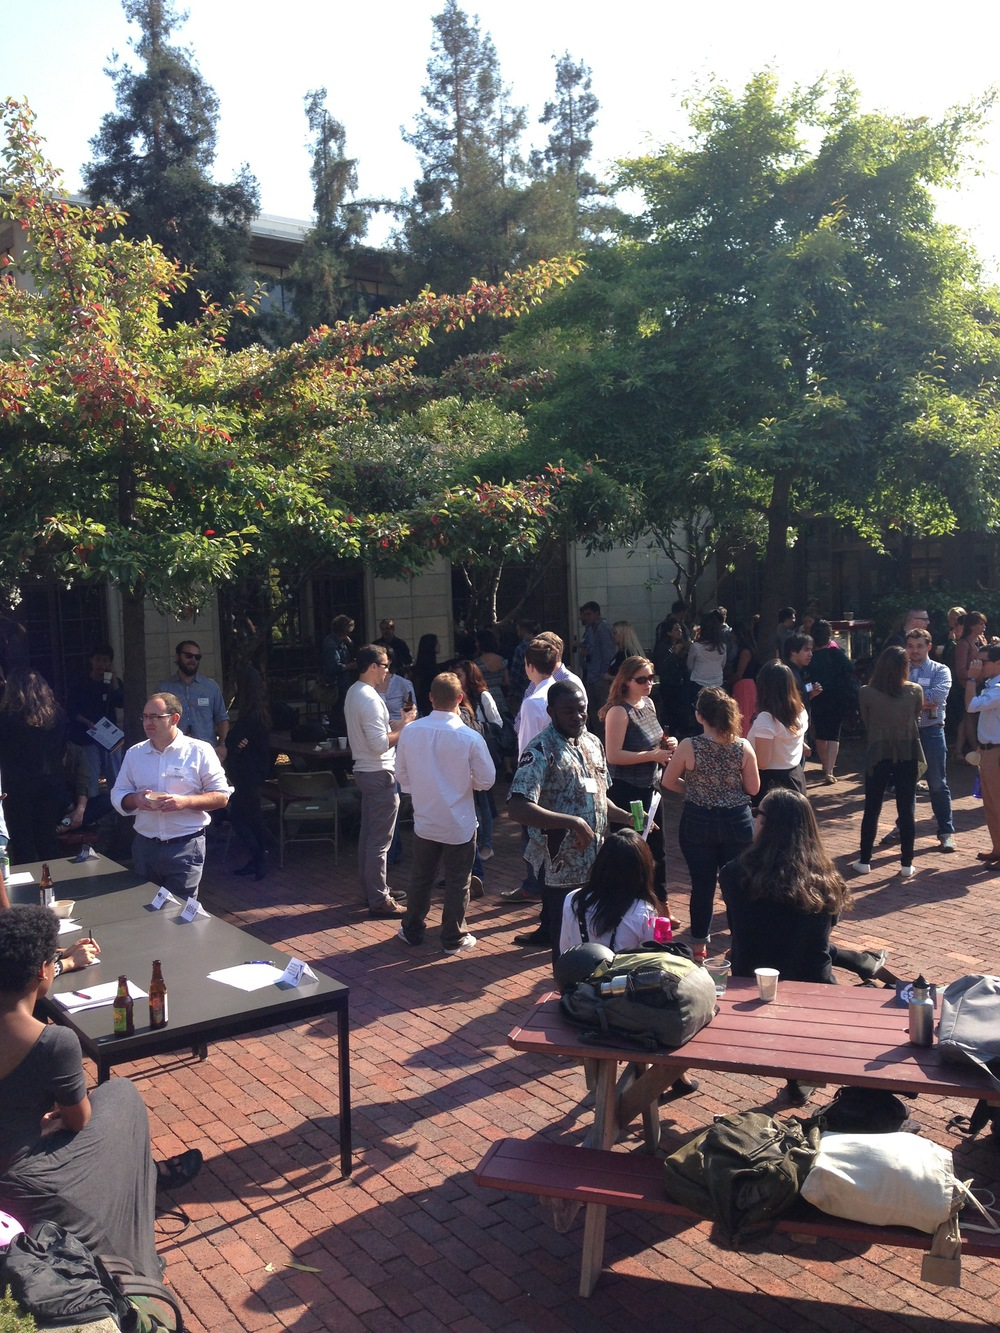 J-School post-orientation mixer with beer and good conversations in the North Gate Hall courtyard